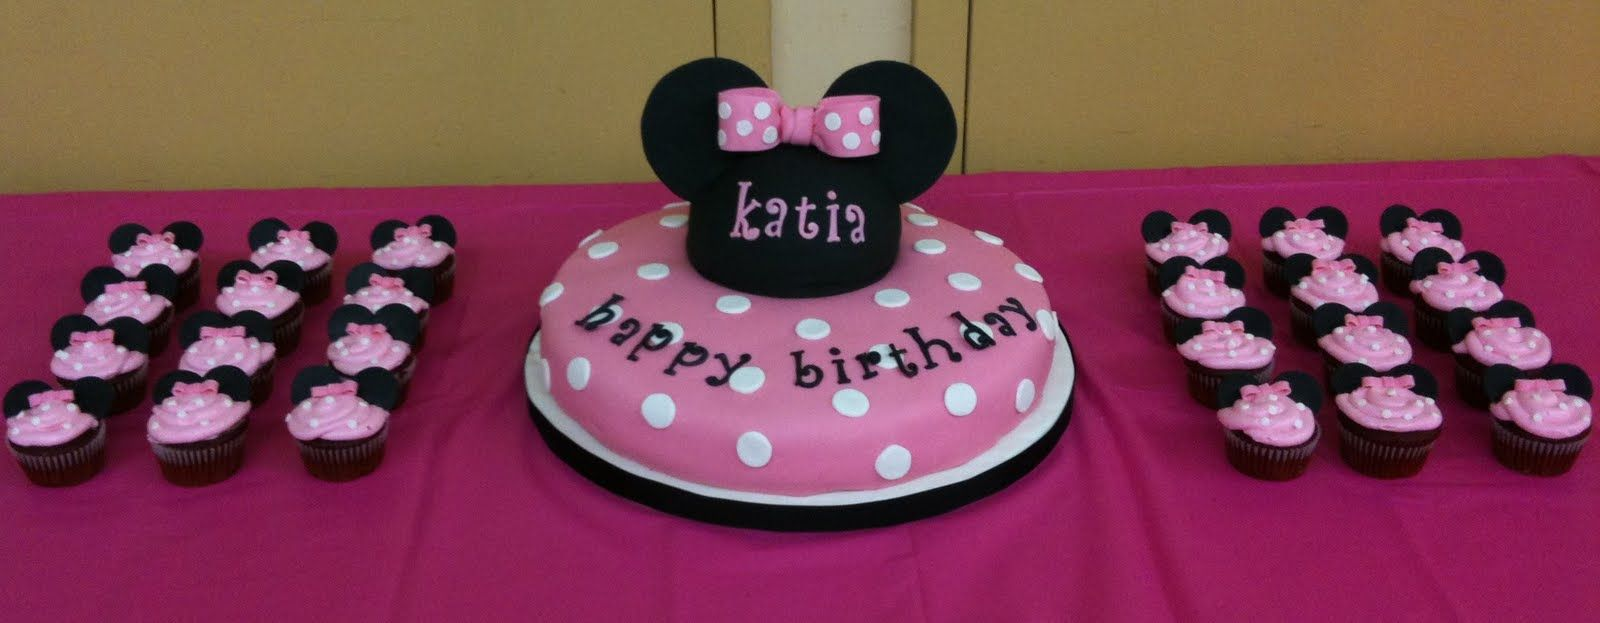 minnie cake so cute and looks so easy to make DISNEY Pinterest